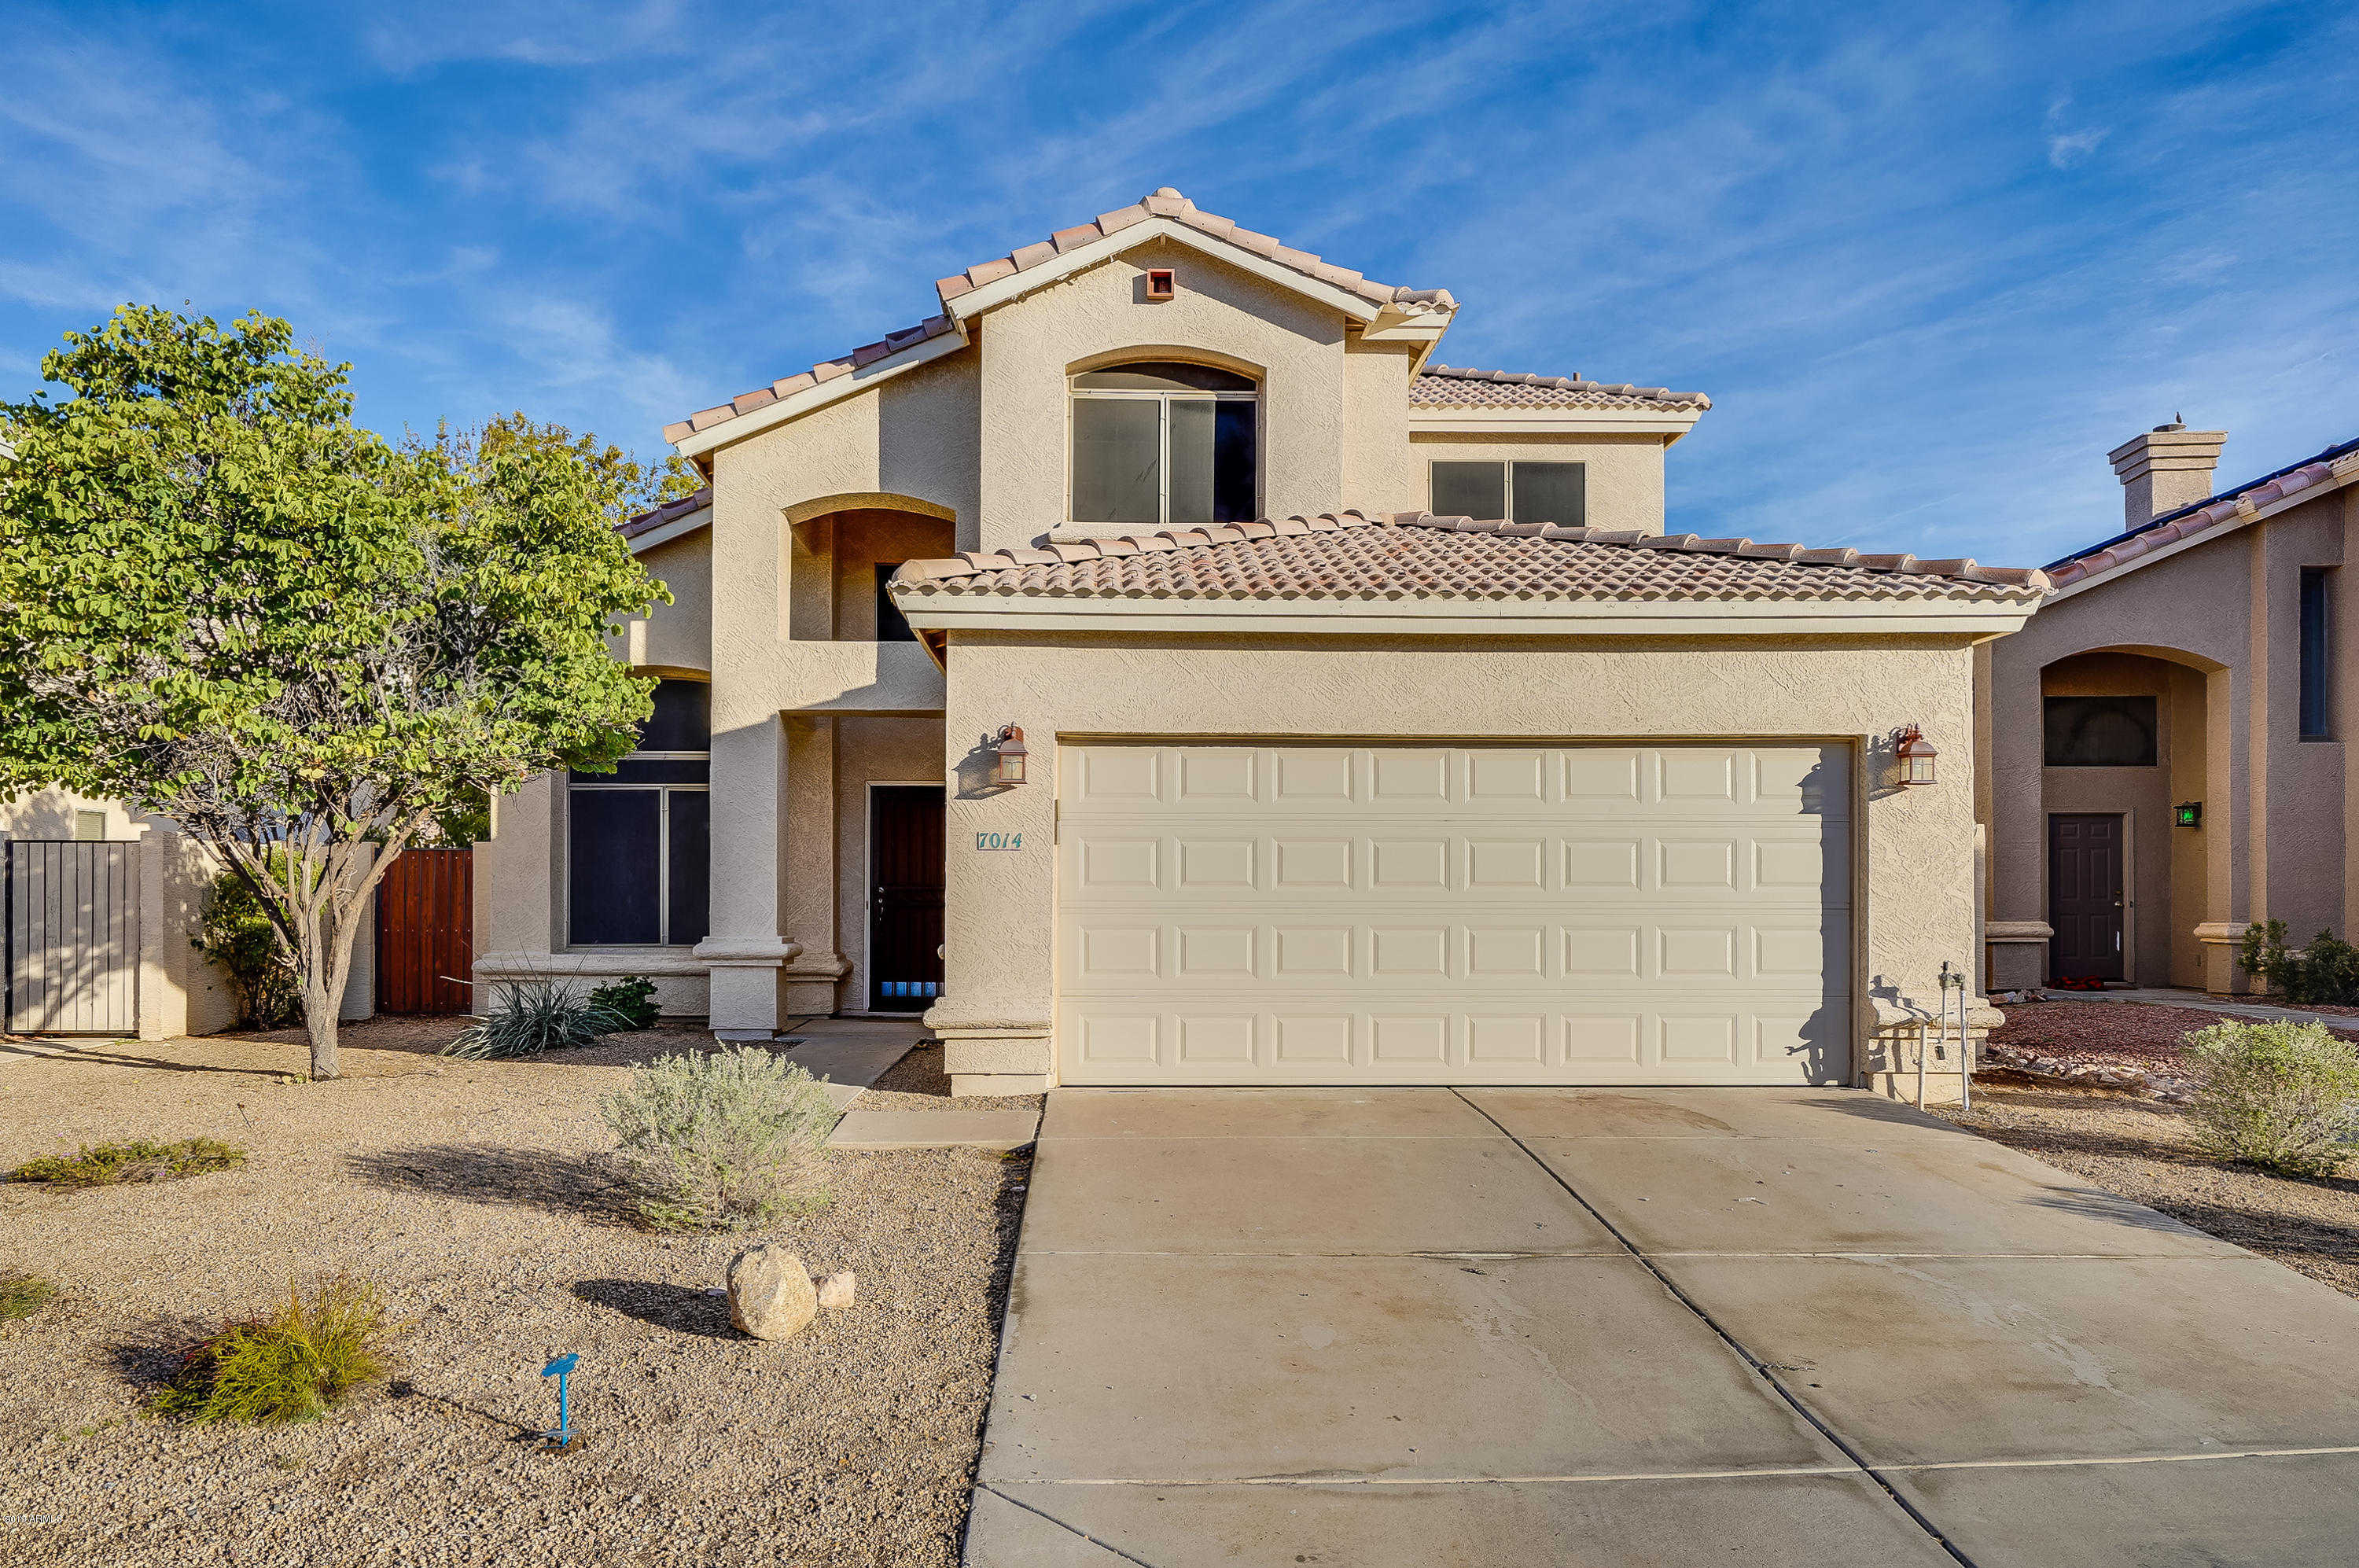 $323,000 - 4Br/3Ba - Home for Sale in Flora Cove, Glendale